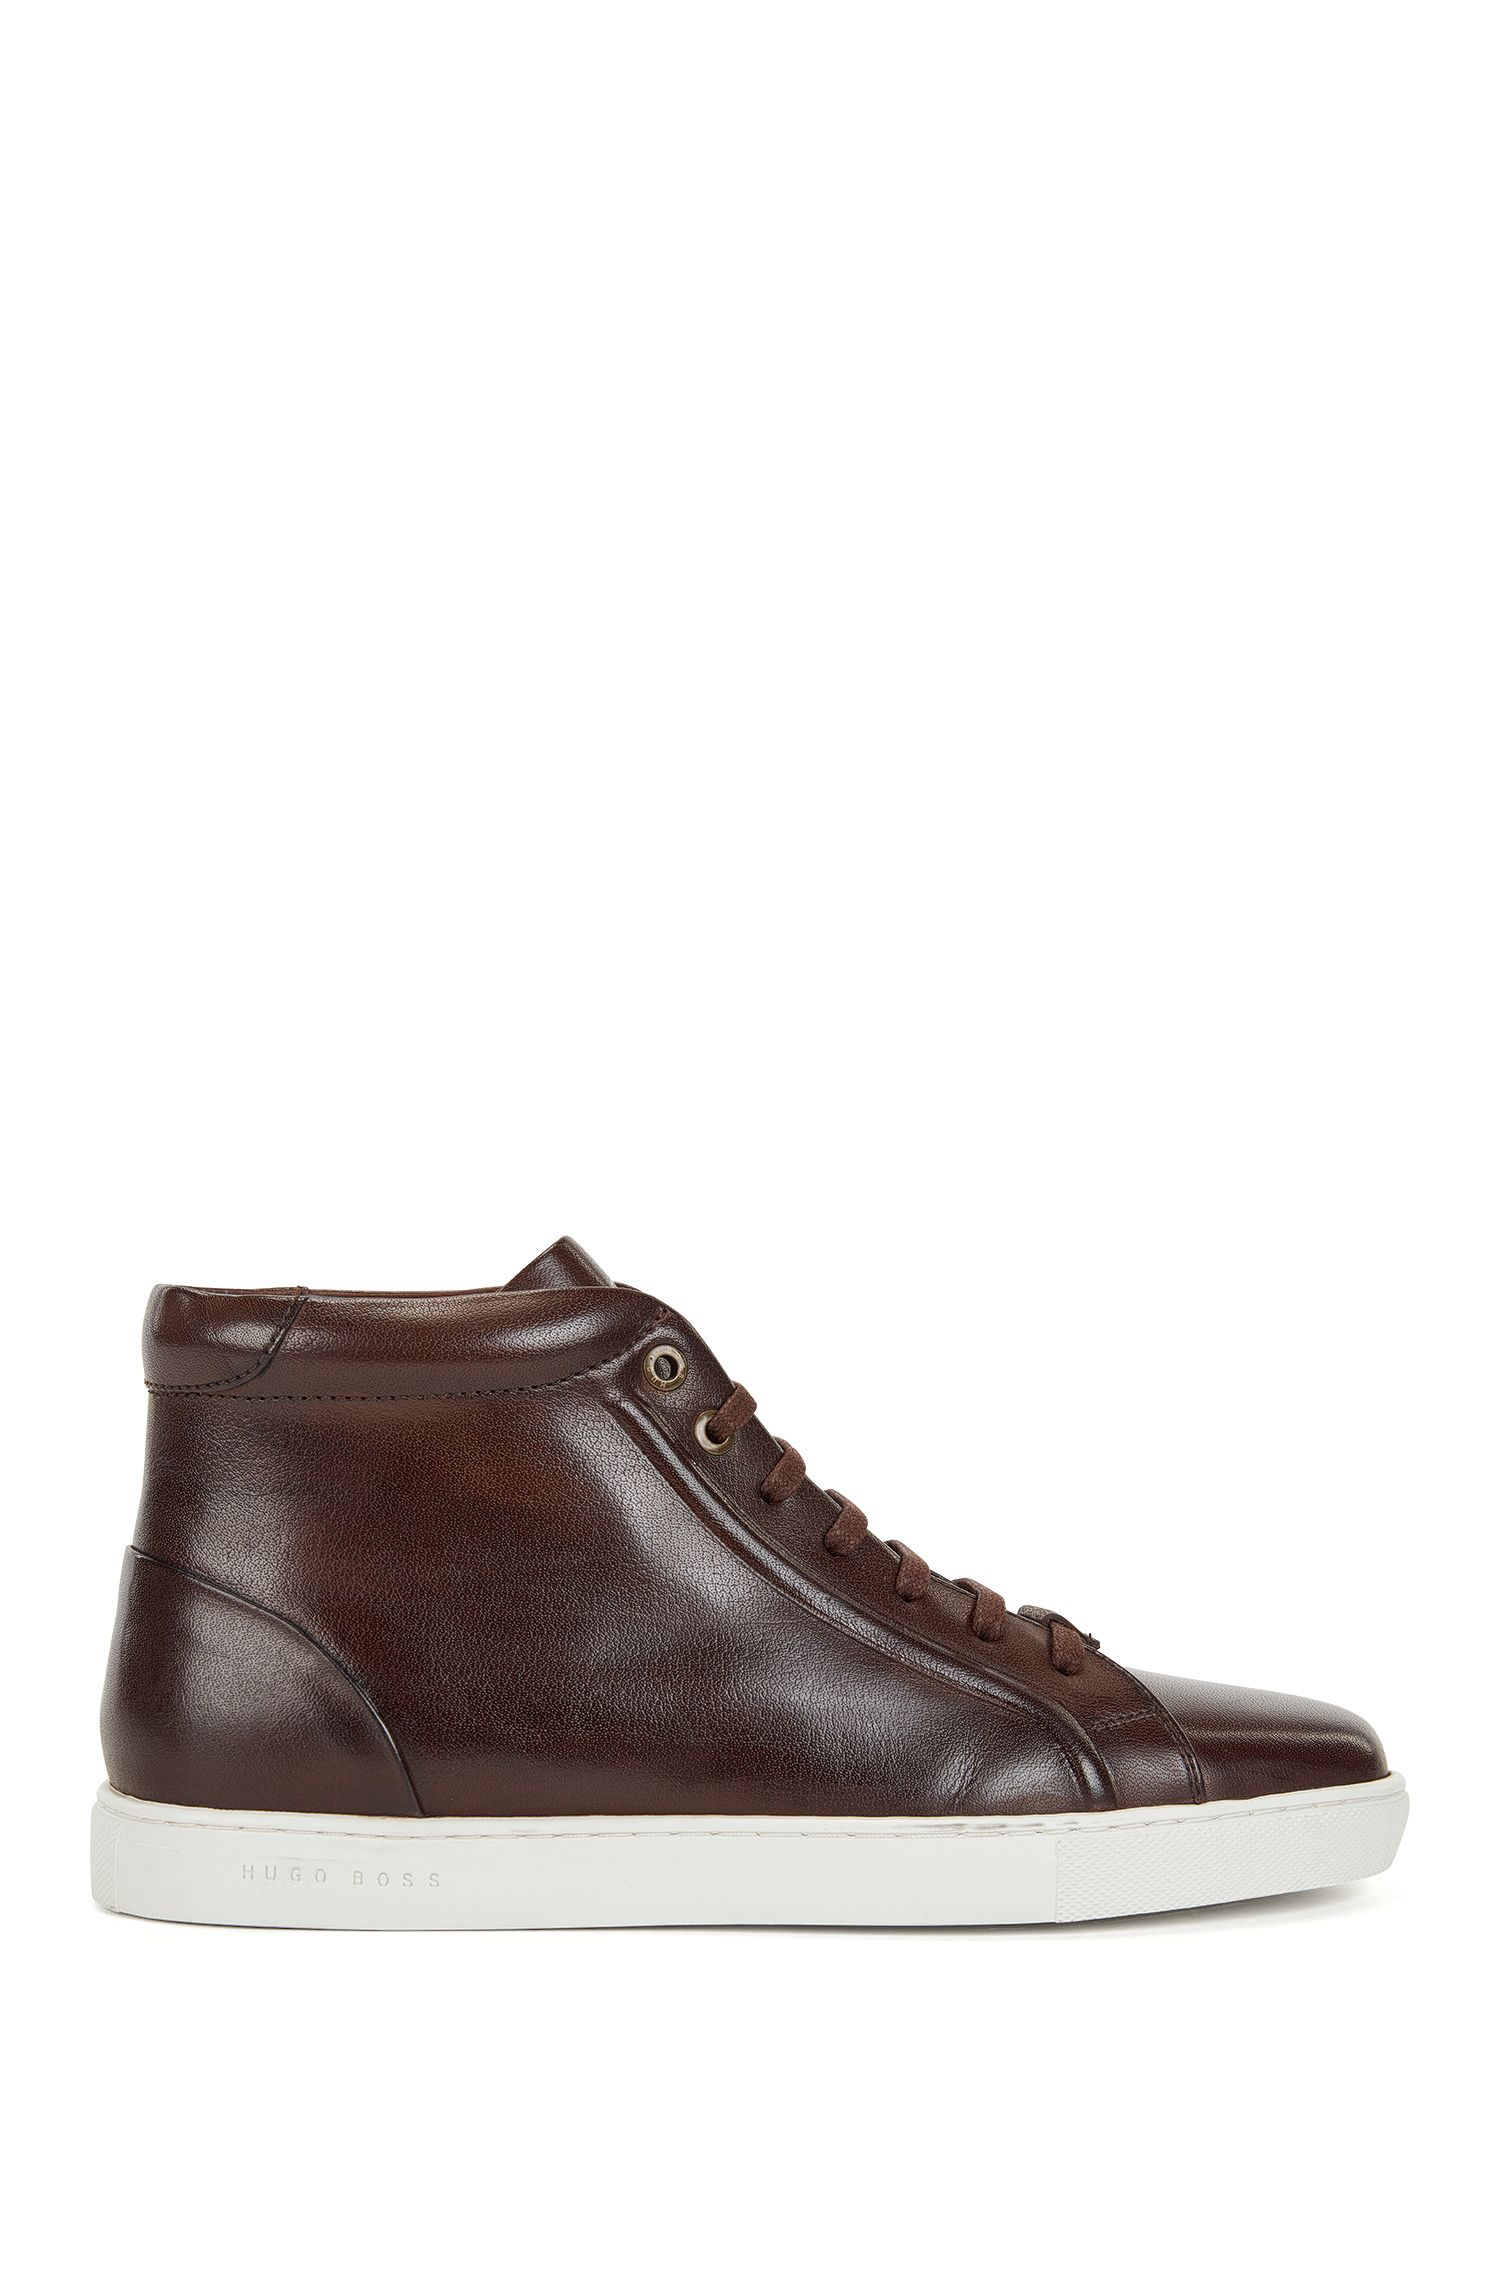 Lace-up high-top trainers in burnished leather